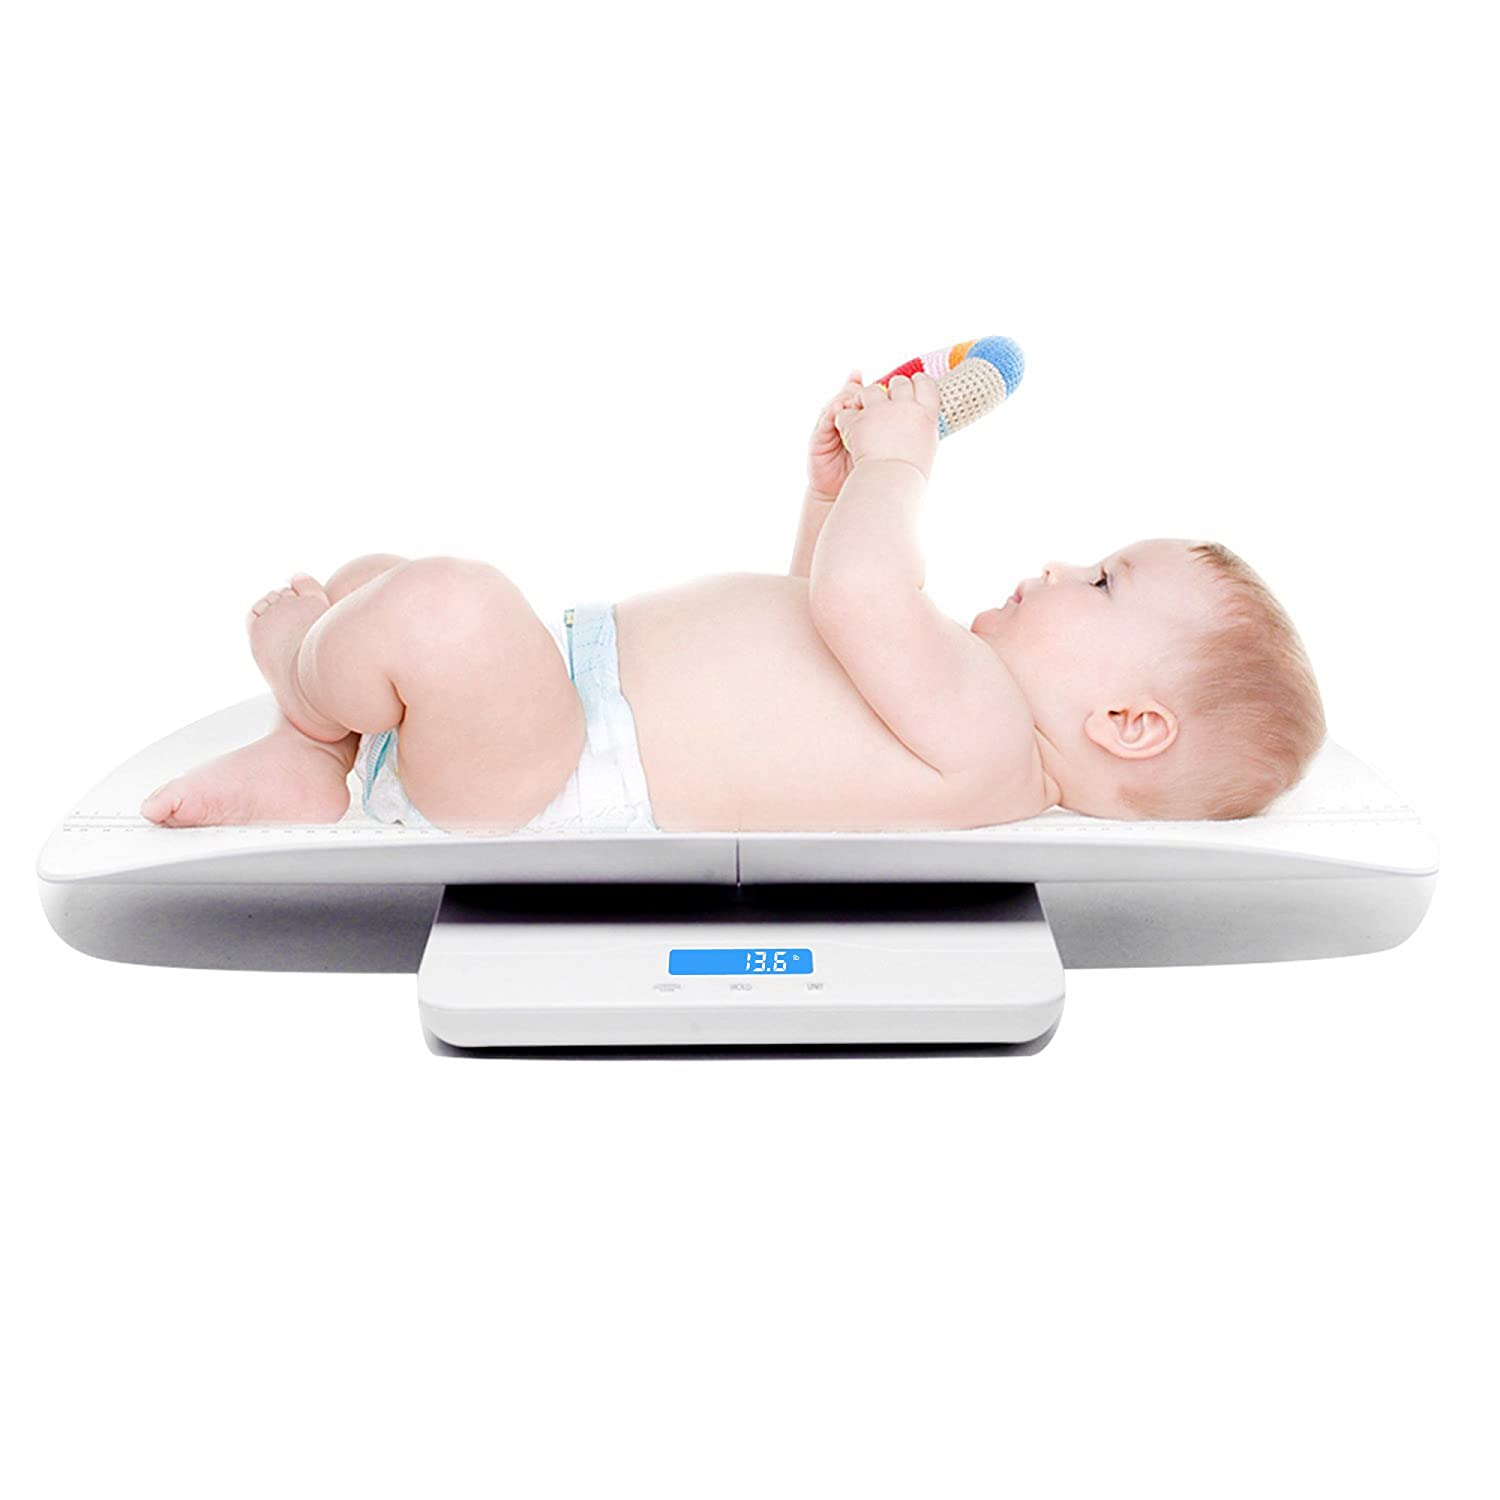 Multi-Function Digital Baby Scale Measure Infant/Baby/Adult Weight Accurately, 220 Pound (lbs) Capacity with Precision 10g, Blue Backlight, Kg/oz/lb, 60cm (White) iSnow-Med